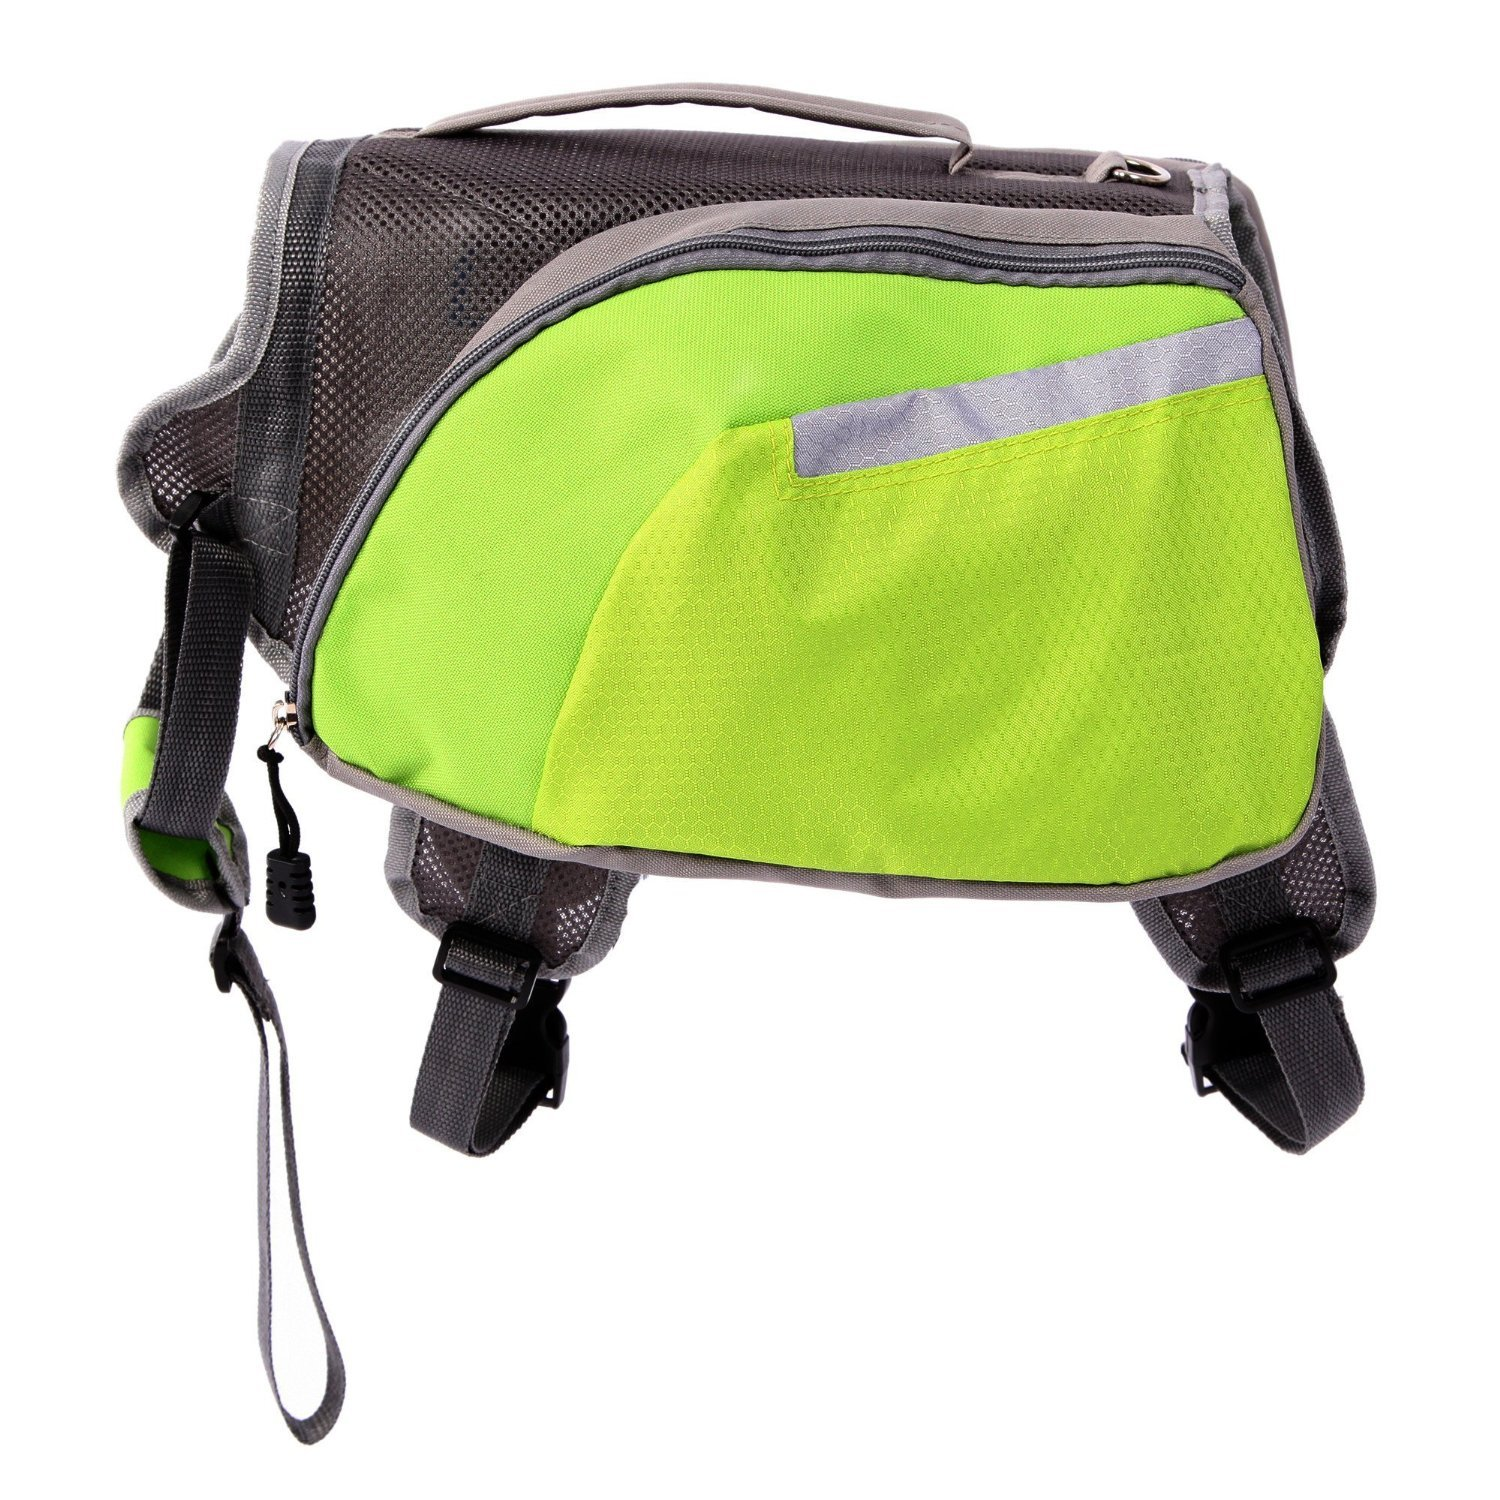 Mitef Dog Pack Outdoor Camping Travel Hiking Gear Pet Dog Backpack